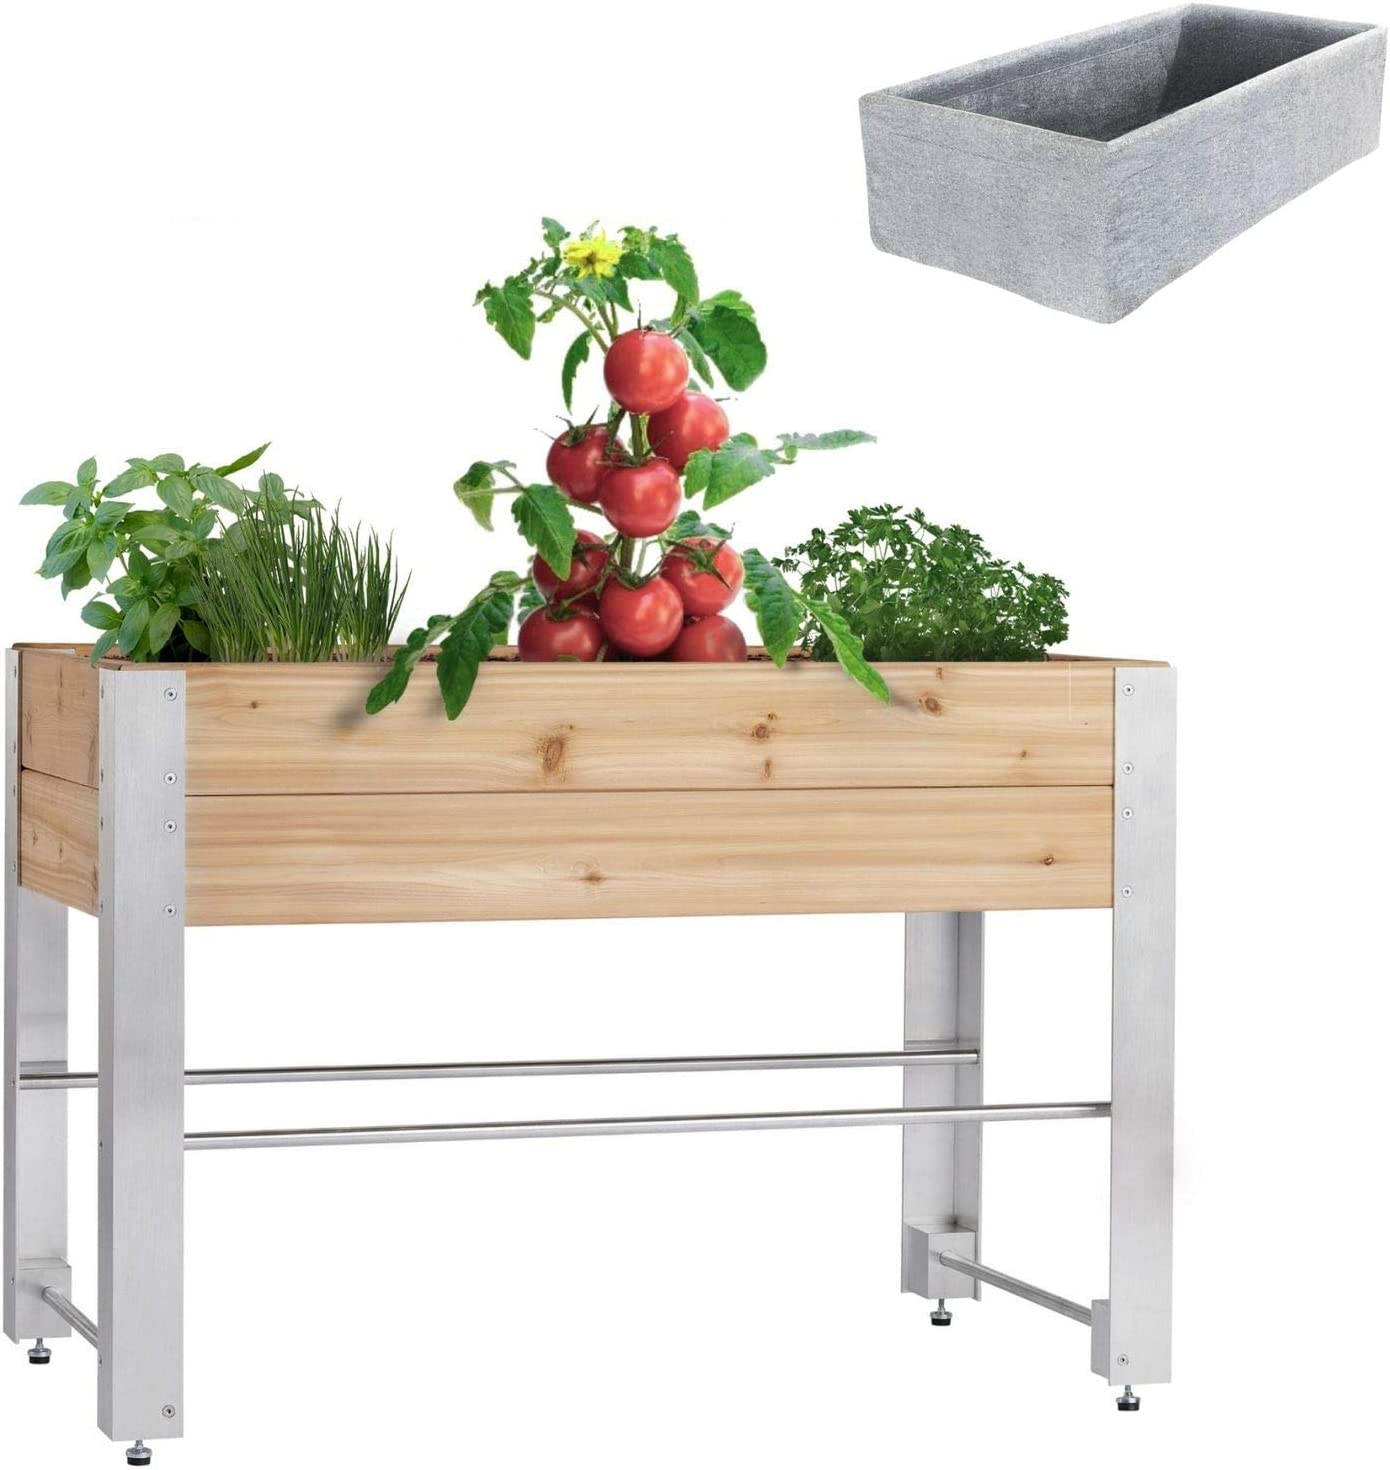 AHH Cedar Raised Garden Bed Kit Anodized Brushed Aluminum, Red Cedar Planter Ideal Raised Garden Planter Box with Legs for Vegetables, Herbs, Flowers - Elevated Cedar Planter Box 1.5x4ft 33inch High